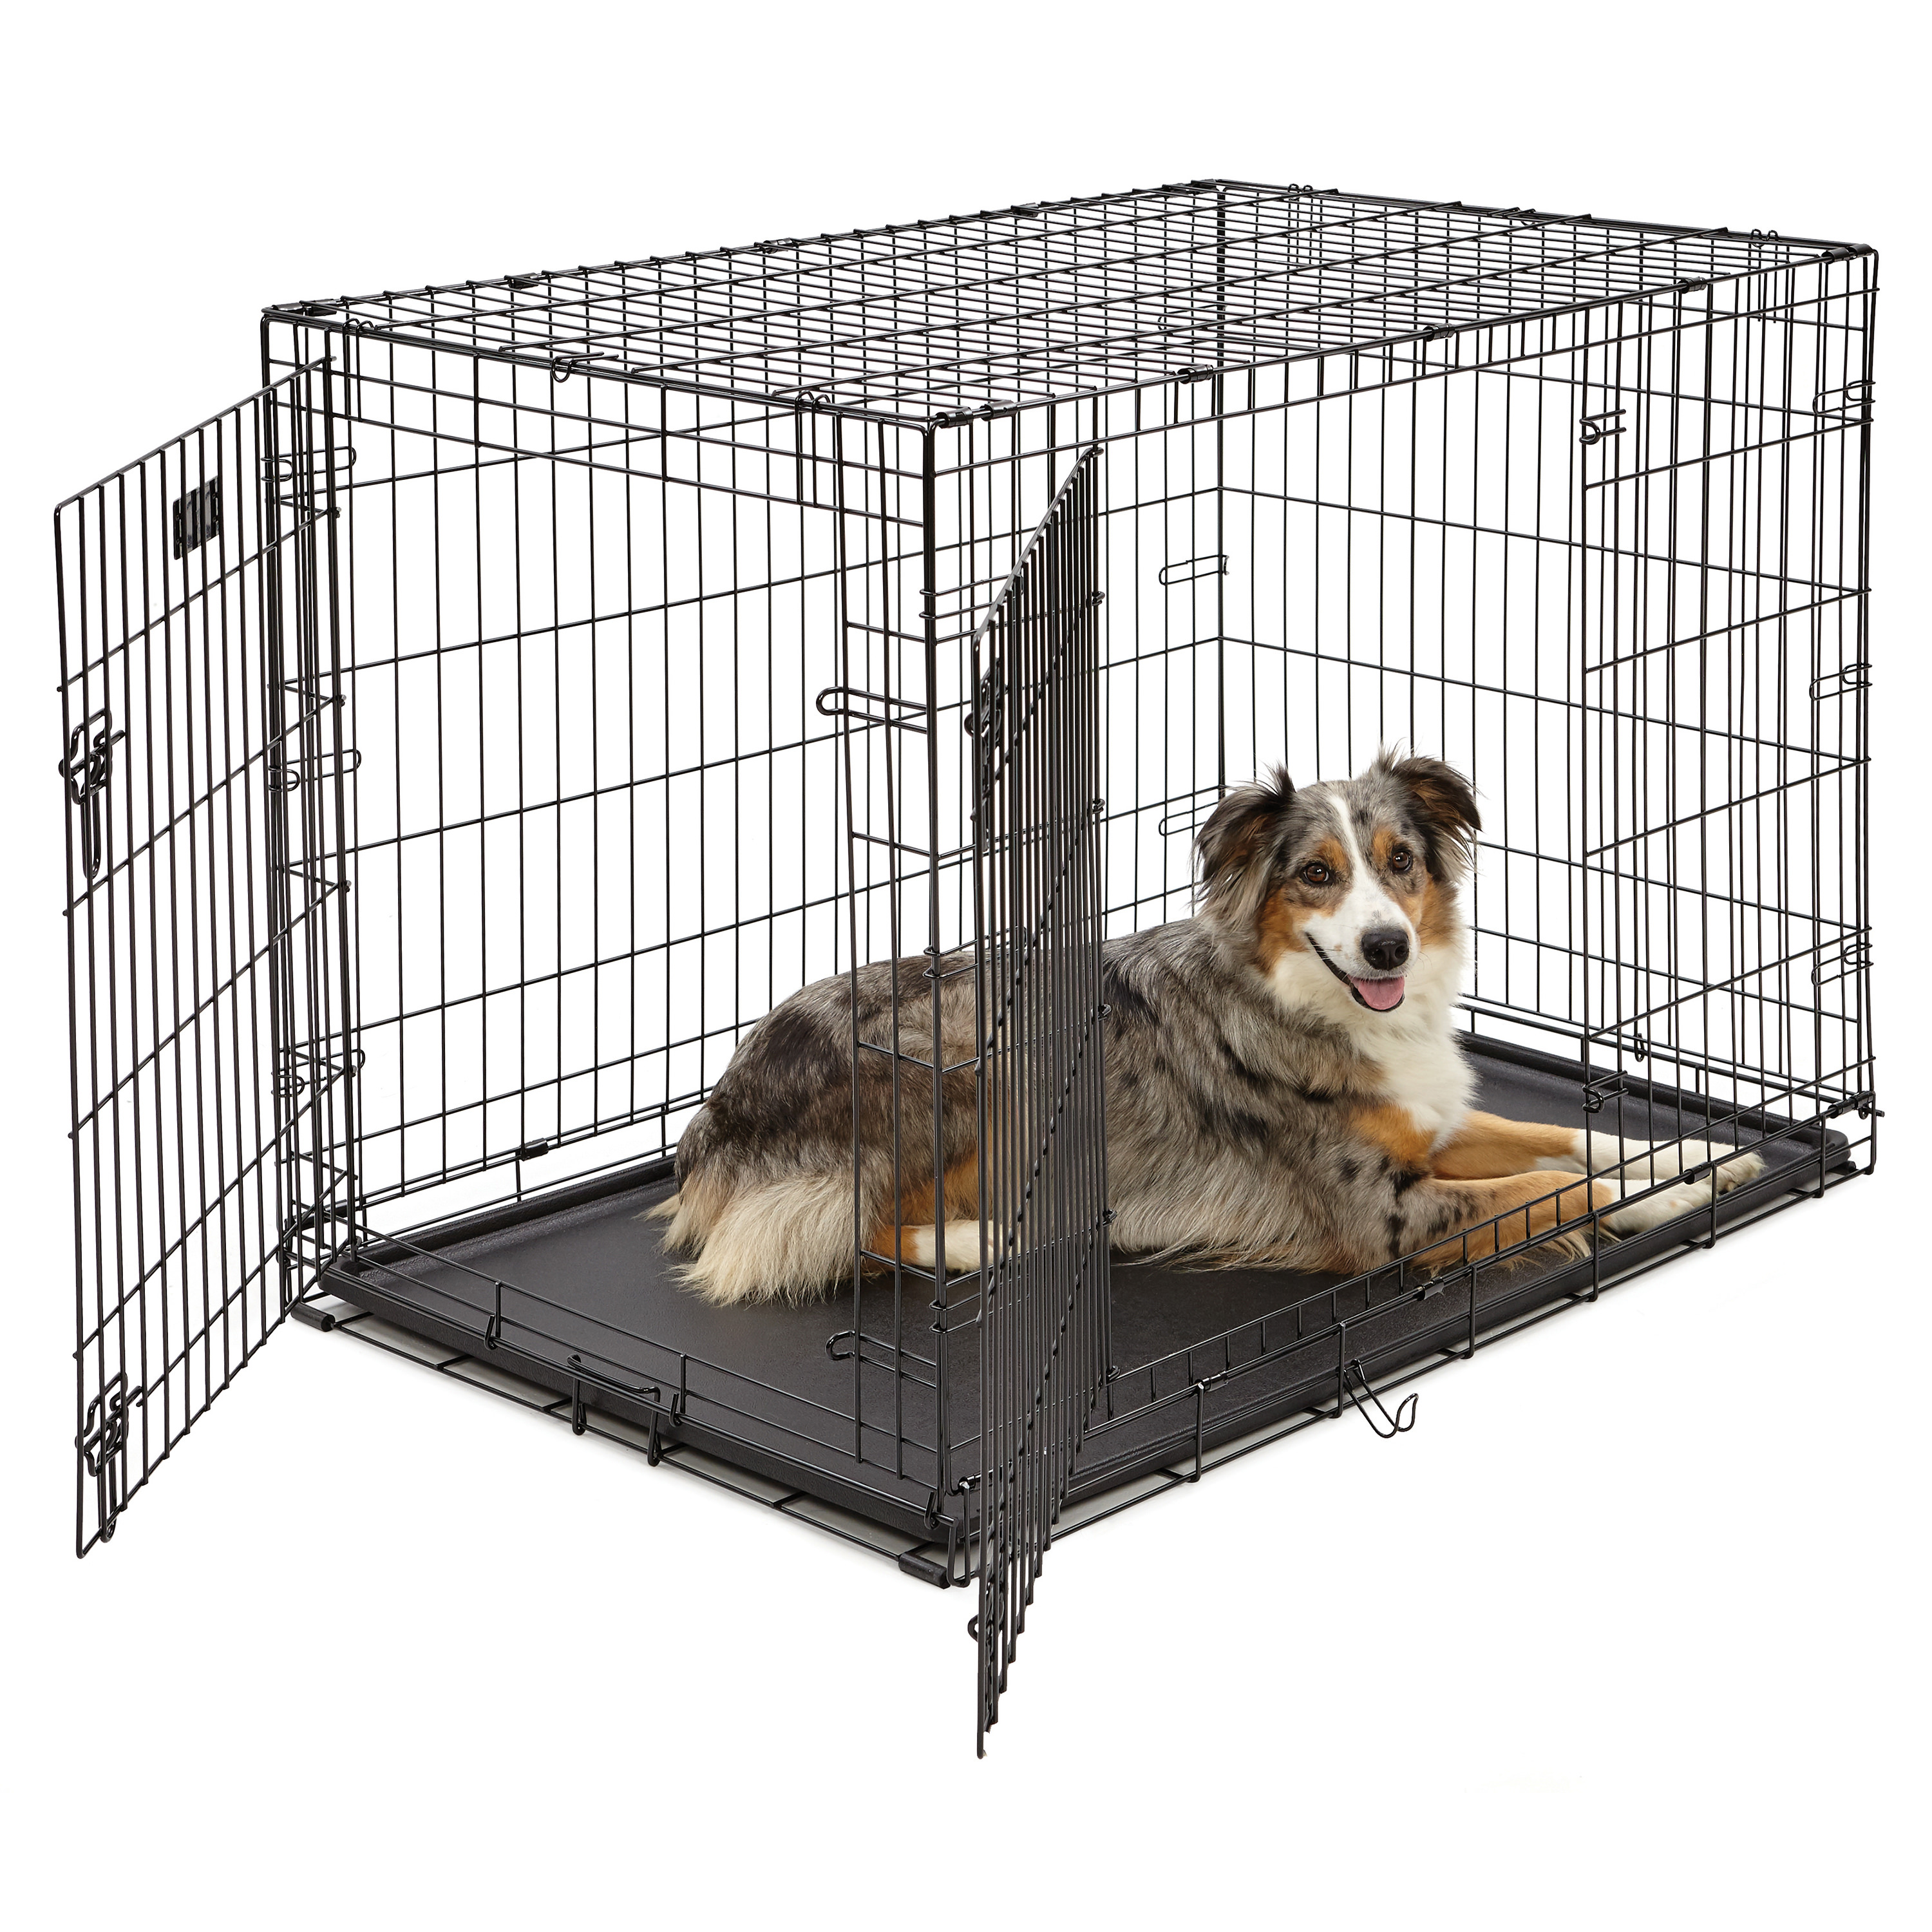 Double Door iCrate Metal Dog Crate, 42-Inch, Black